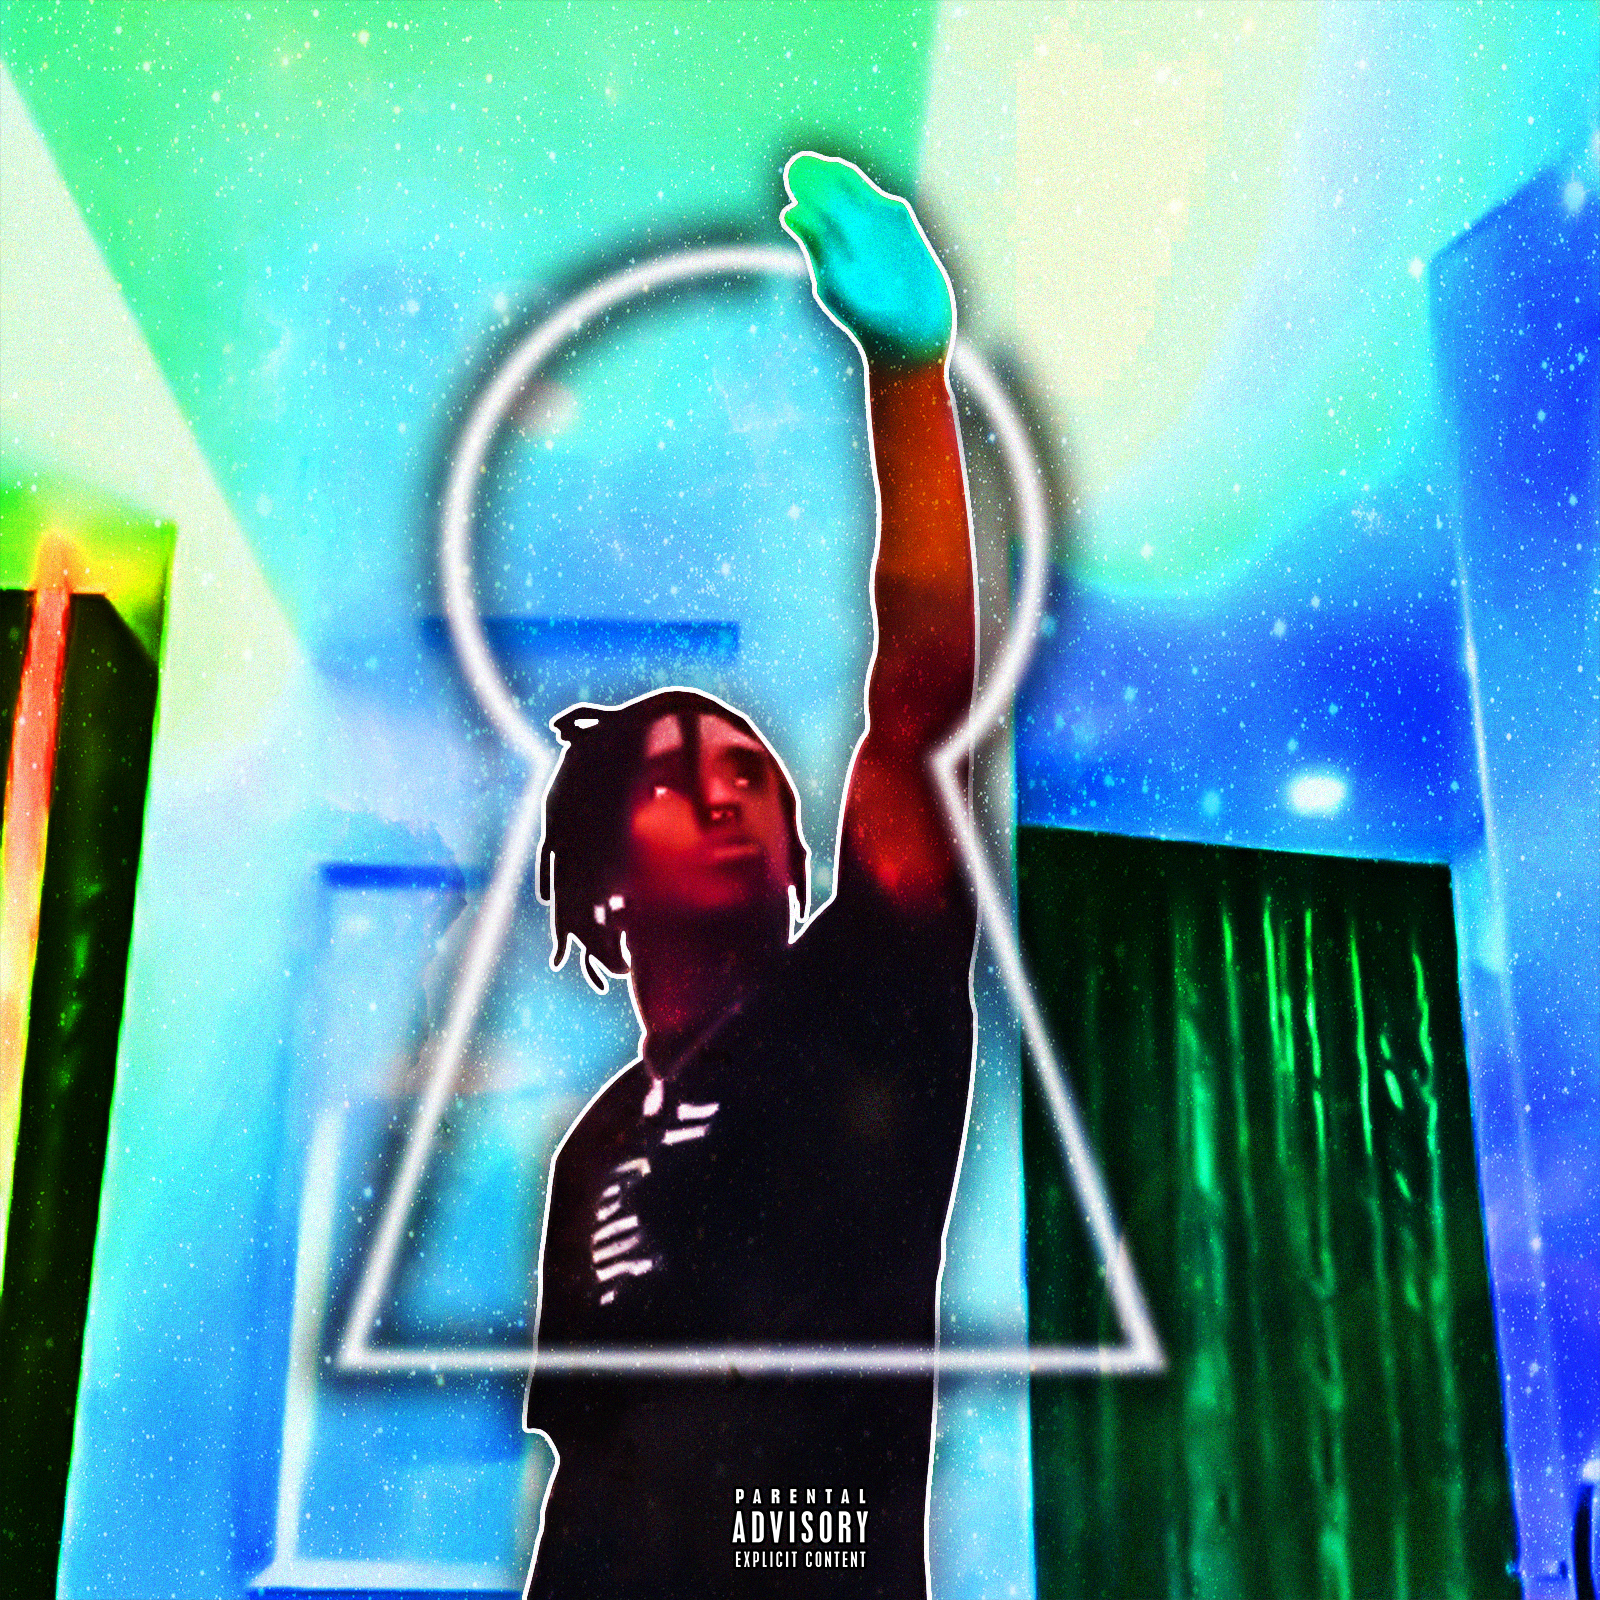 Lil Uzi Vert Hd Posted By Michelle Tremblay